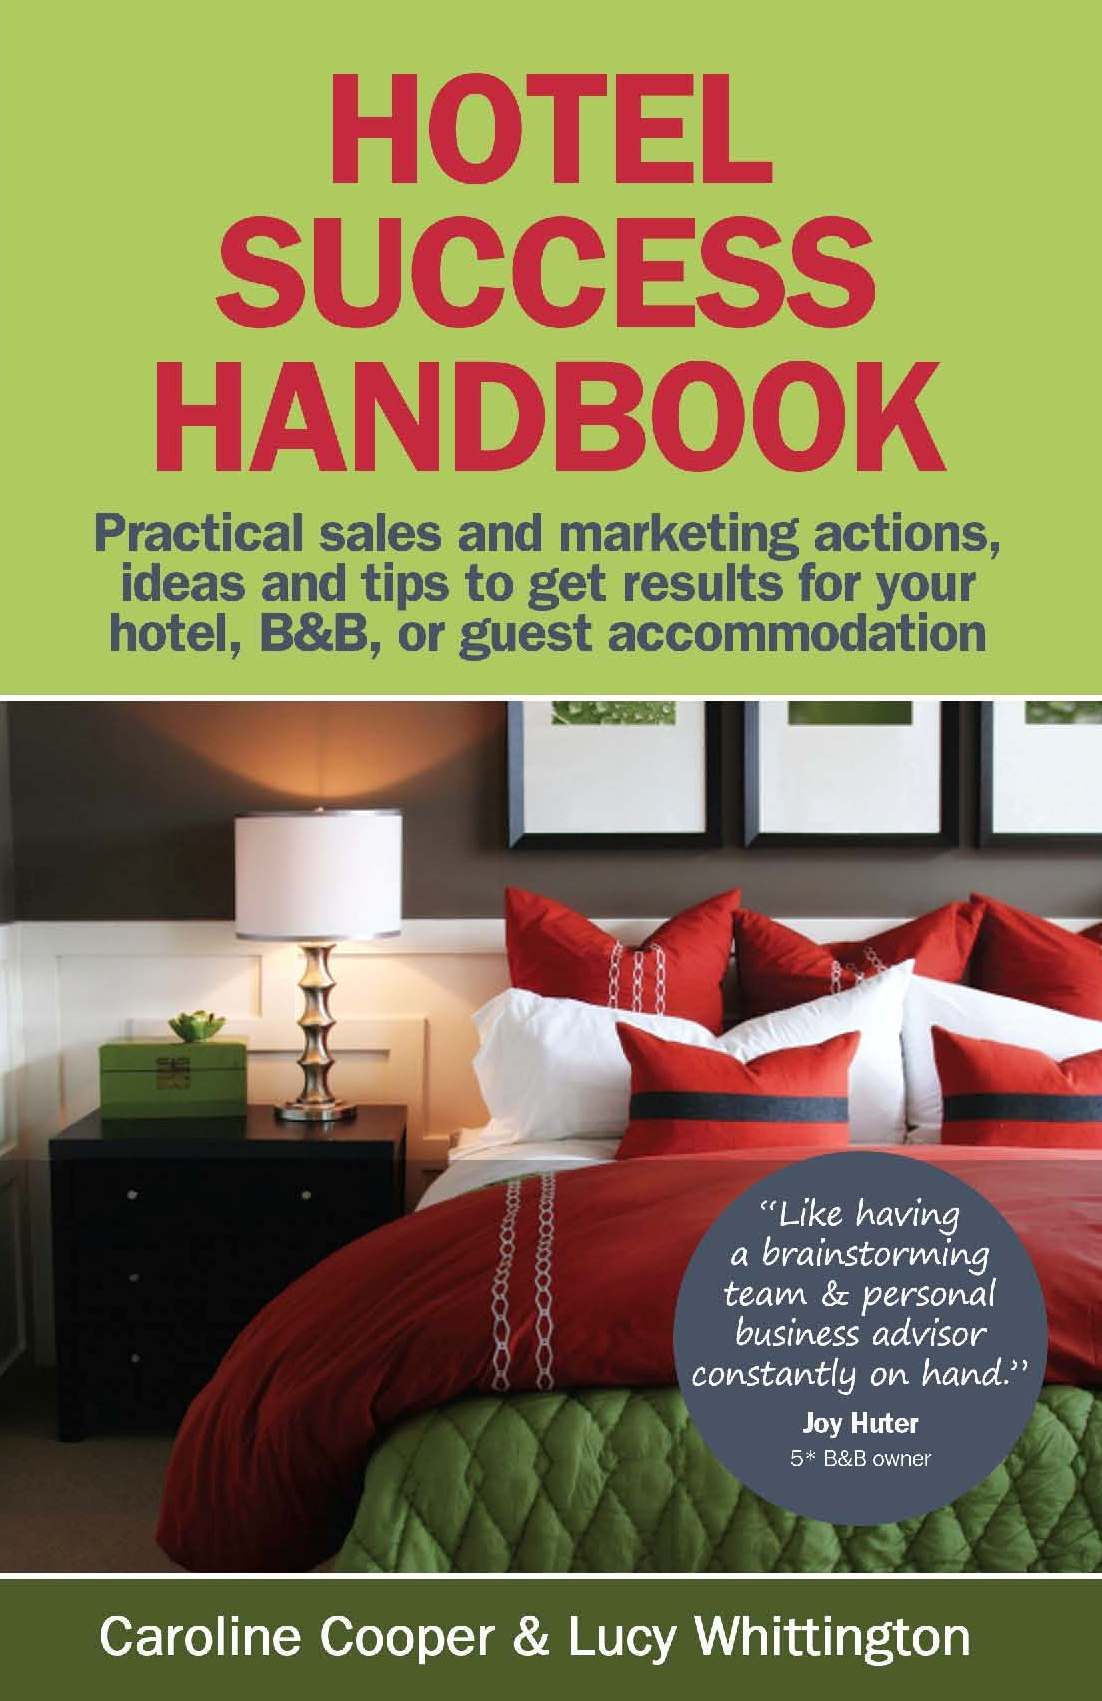 Hotel Success Handbook - Practical Sales And Marketing Ideas  Actions  And Tips To Get Results For Your Small Hotel  B&B  Or Guest Accommodation By: Lucy Whittington Caroline Cooper